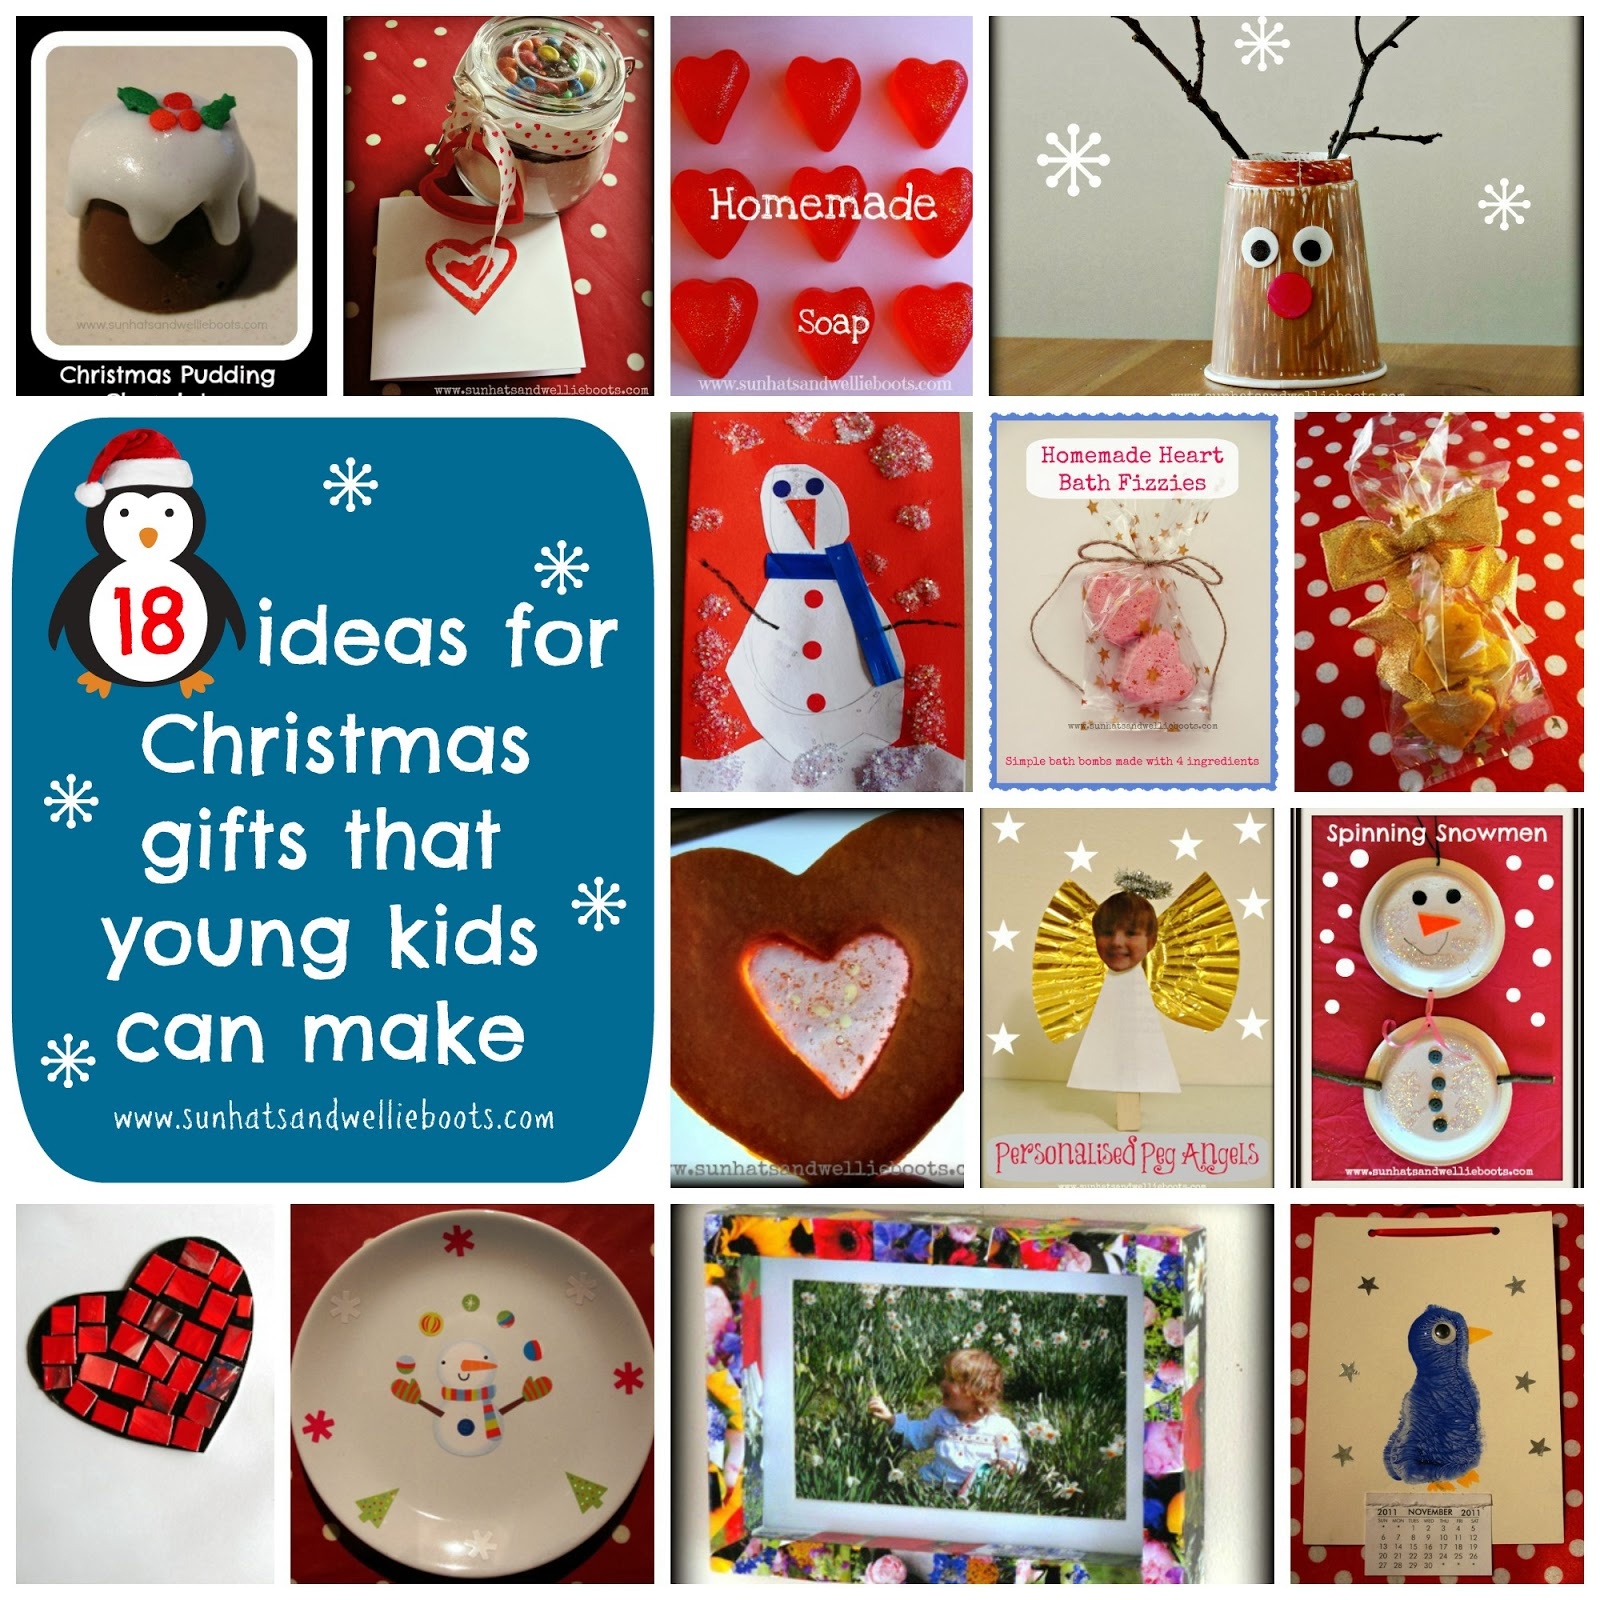 here are 18 of our favourite homemade gifts that young children can make to share with special people this season